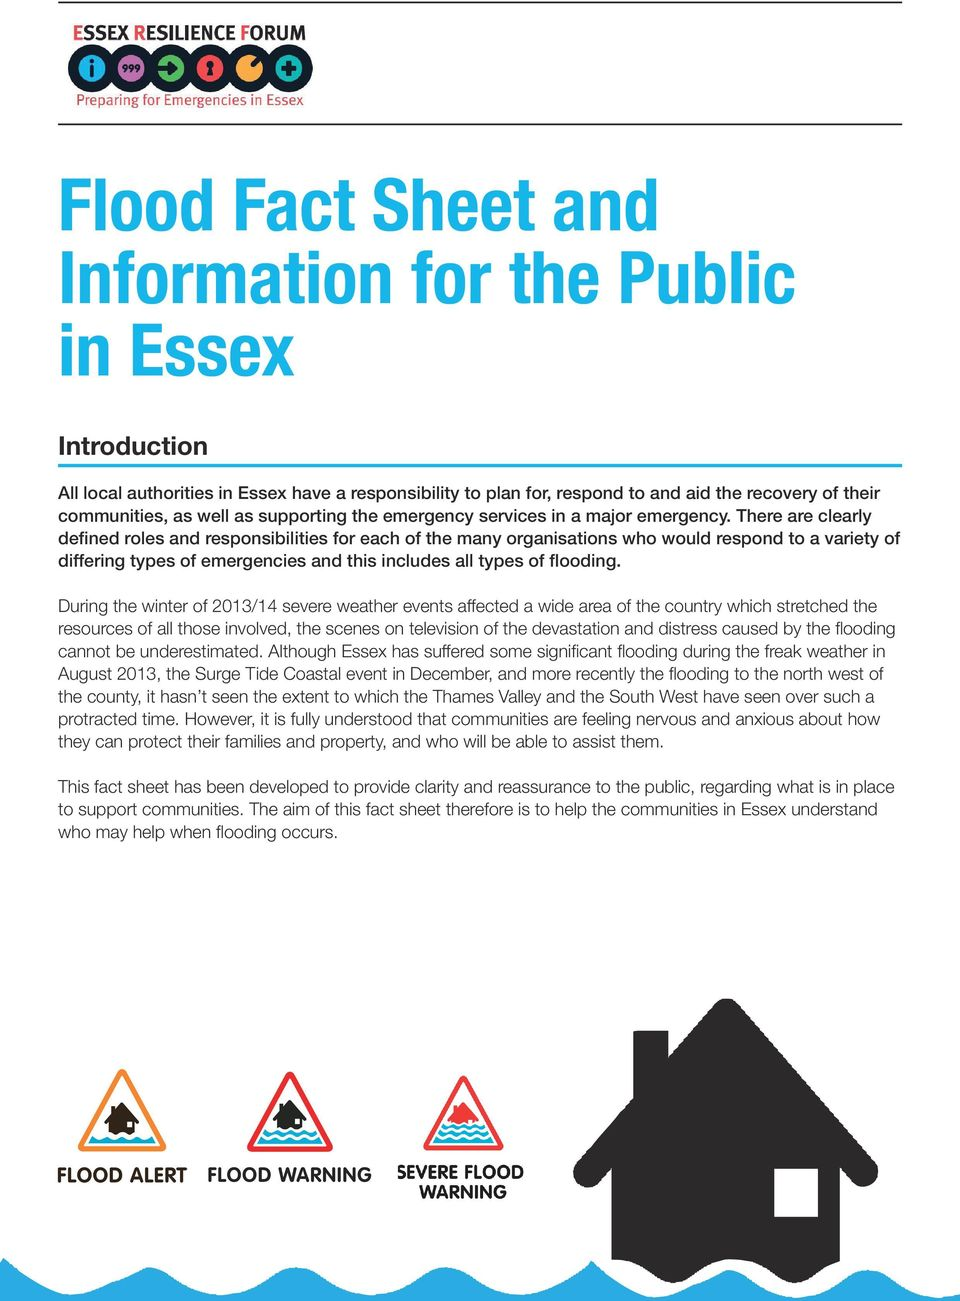 There are clearly defined roles and responsibilities for each of the many organisations who would respond to a variety of differing types of emergencies and this includes all types of flooding.